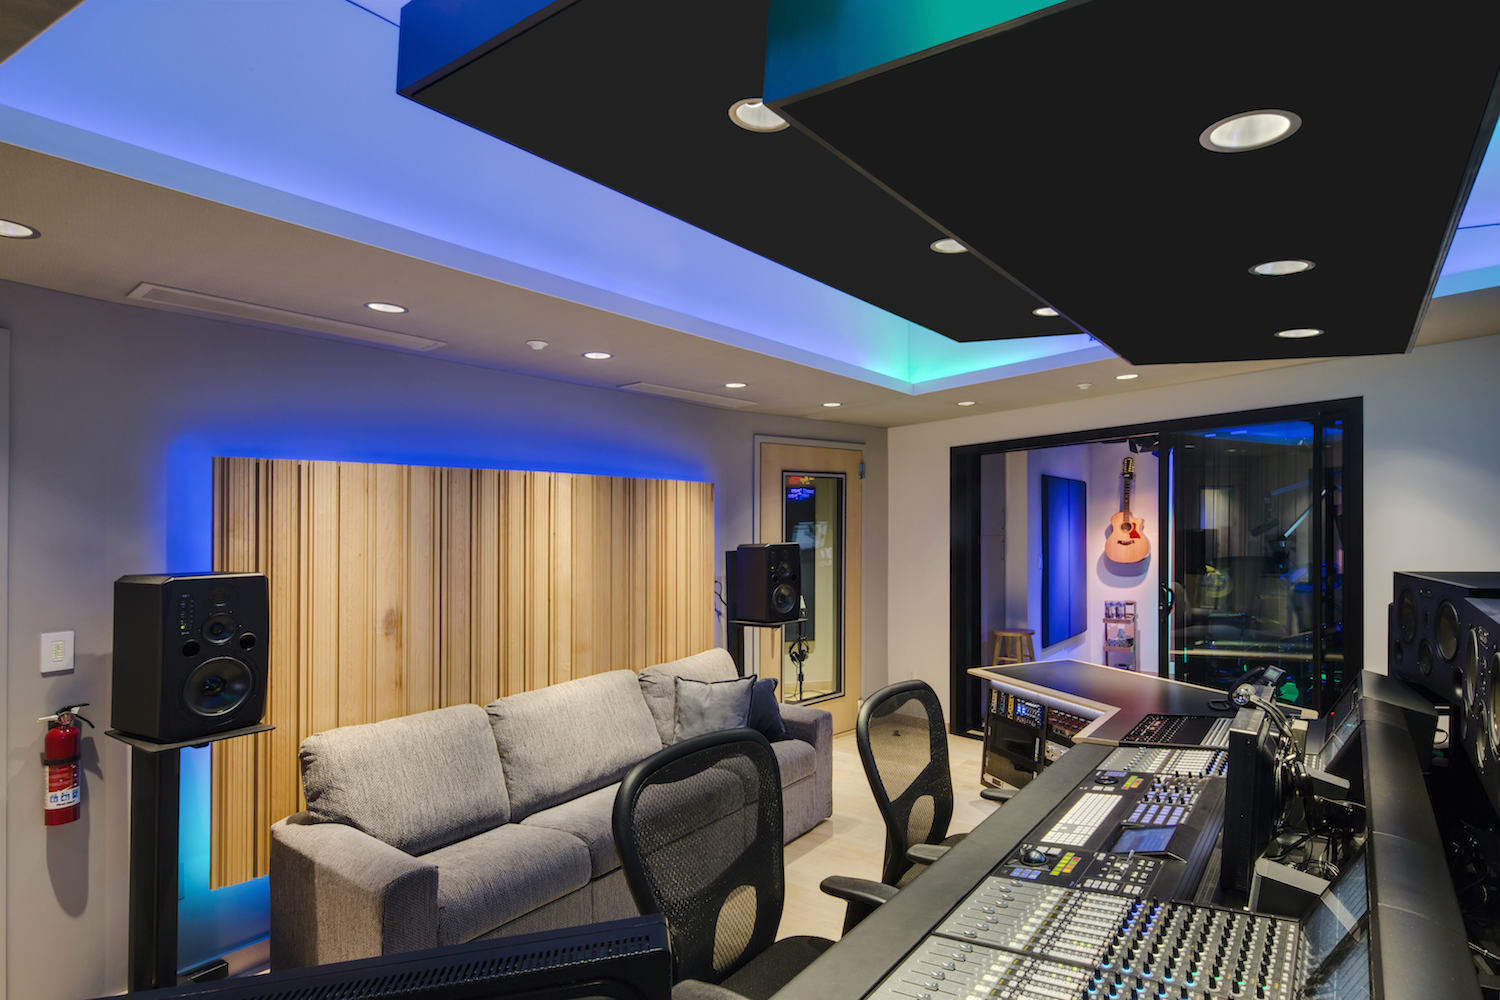 The MacPhails met WSDG to achieve a full up, professionally designed, acoustically superlative residential recording studio for their thriving audio production business. Studio back.